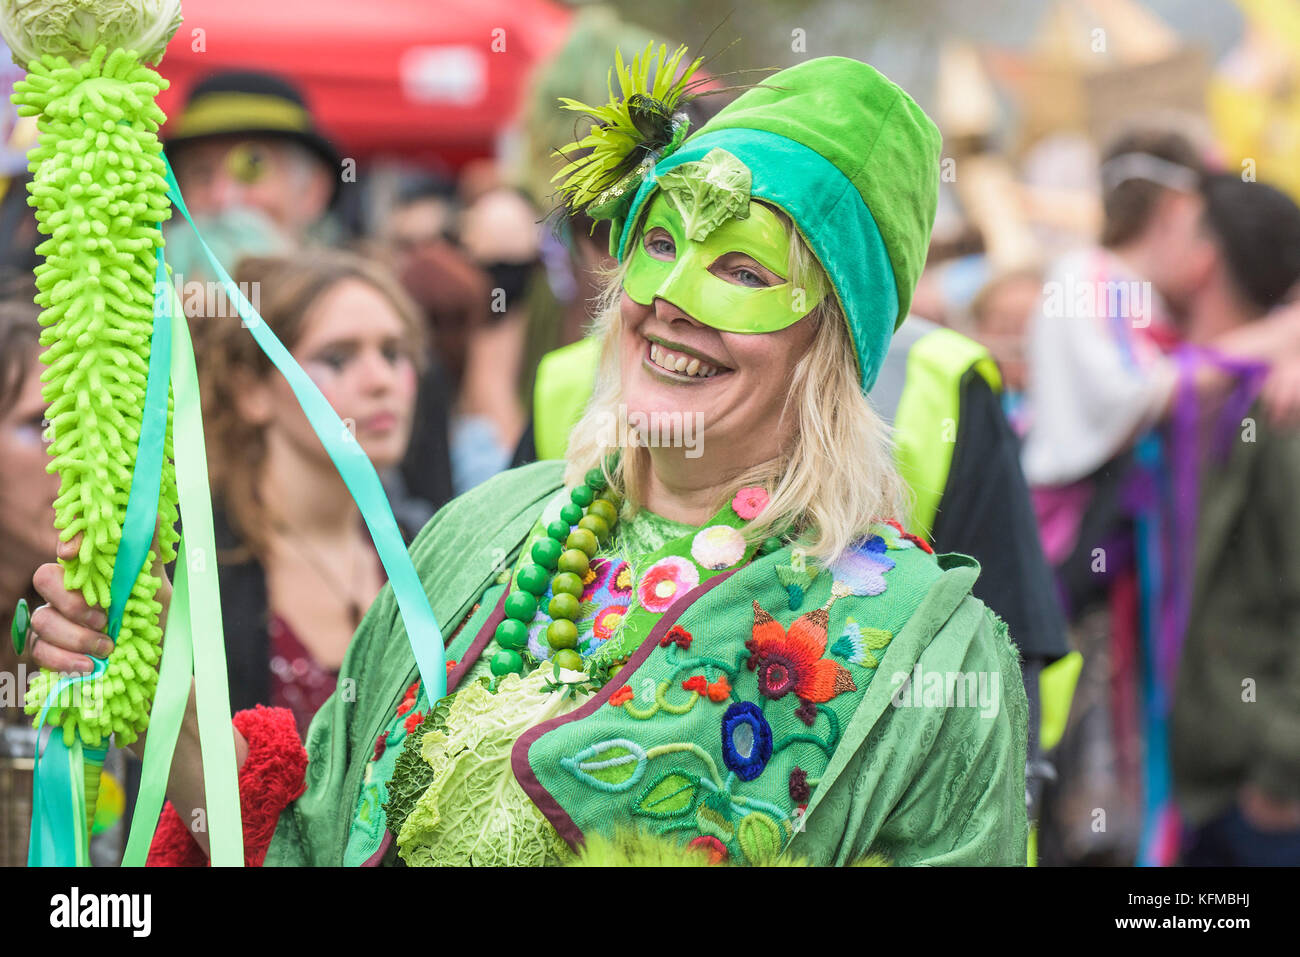 Penryn Kemeneth a two day heritage festival at Penryn Cornwall - a masked participant enjoying herself as she parades - Stock Image